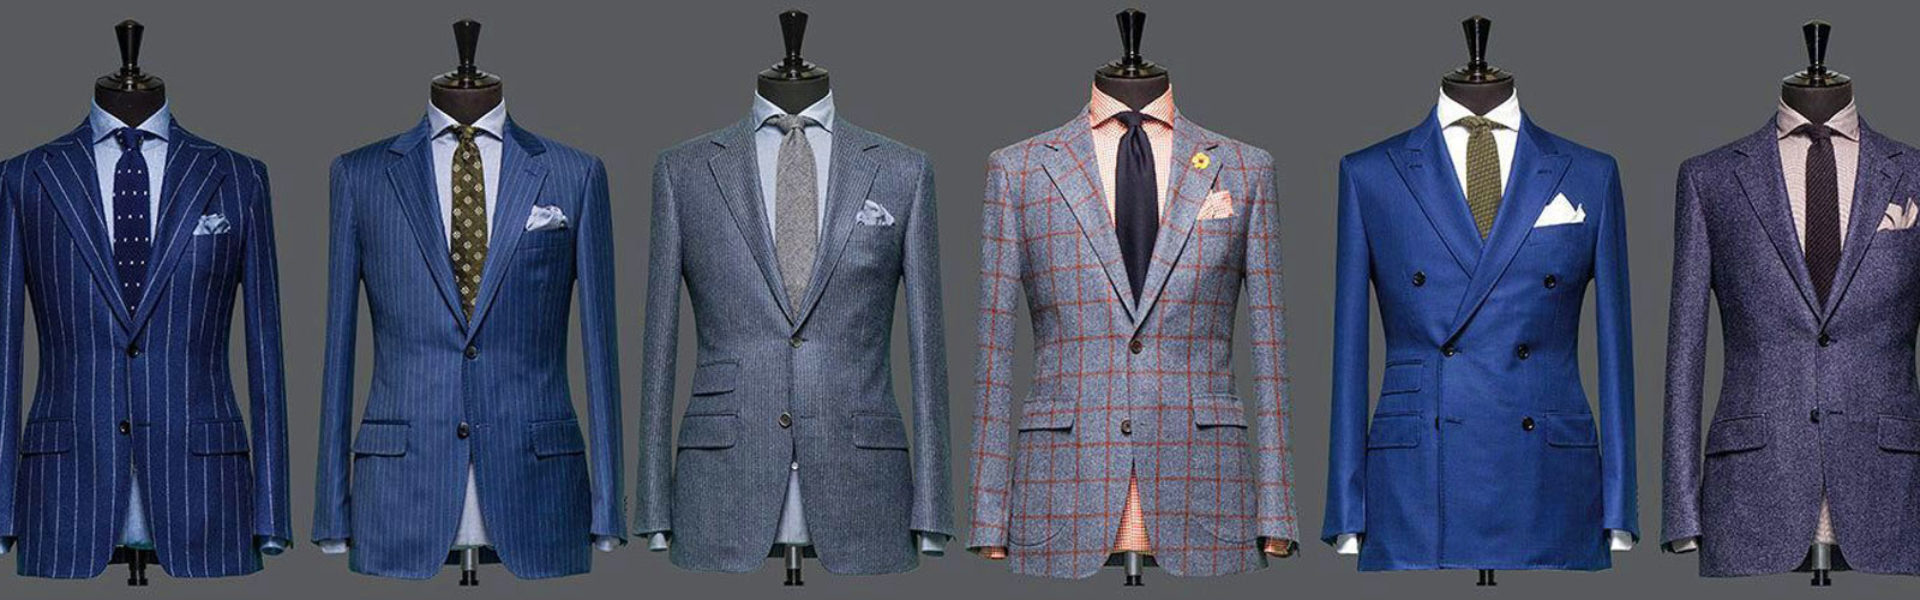 cropped-a-variety-of-tailor-made-suits.jpg